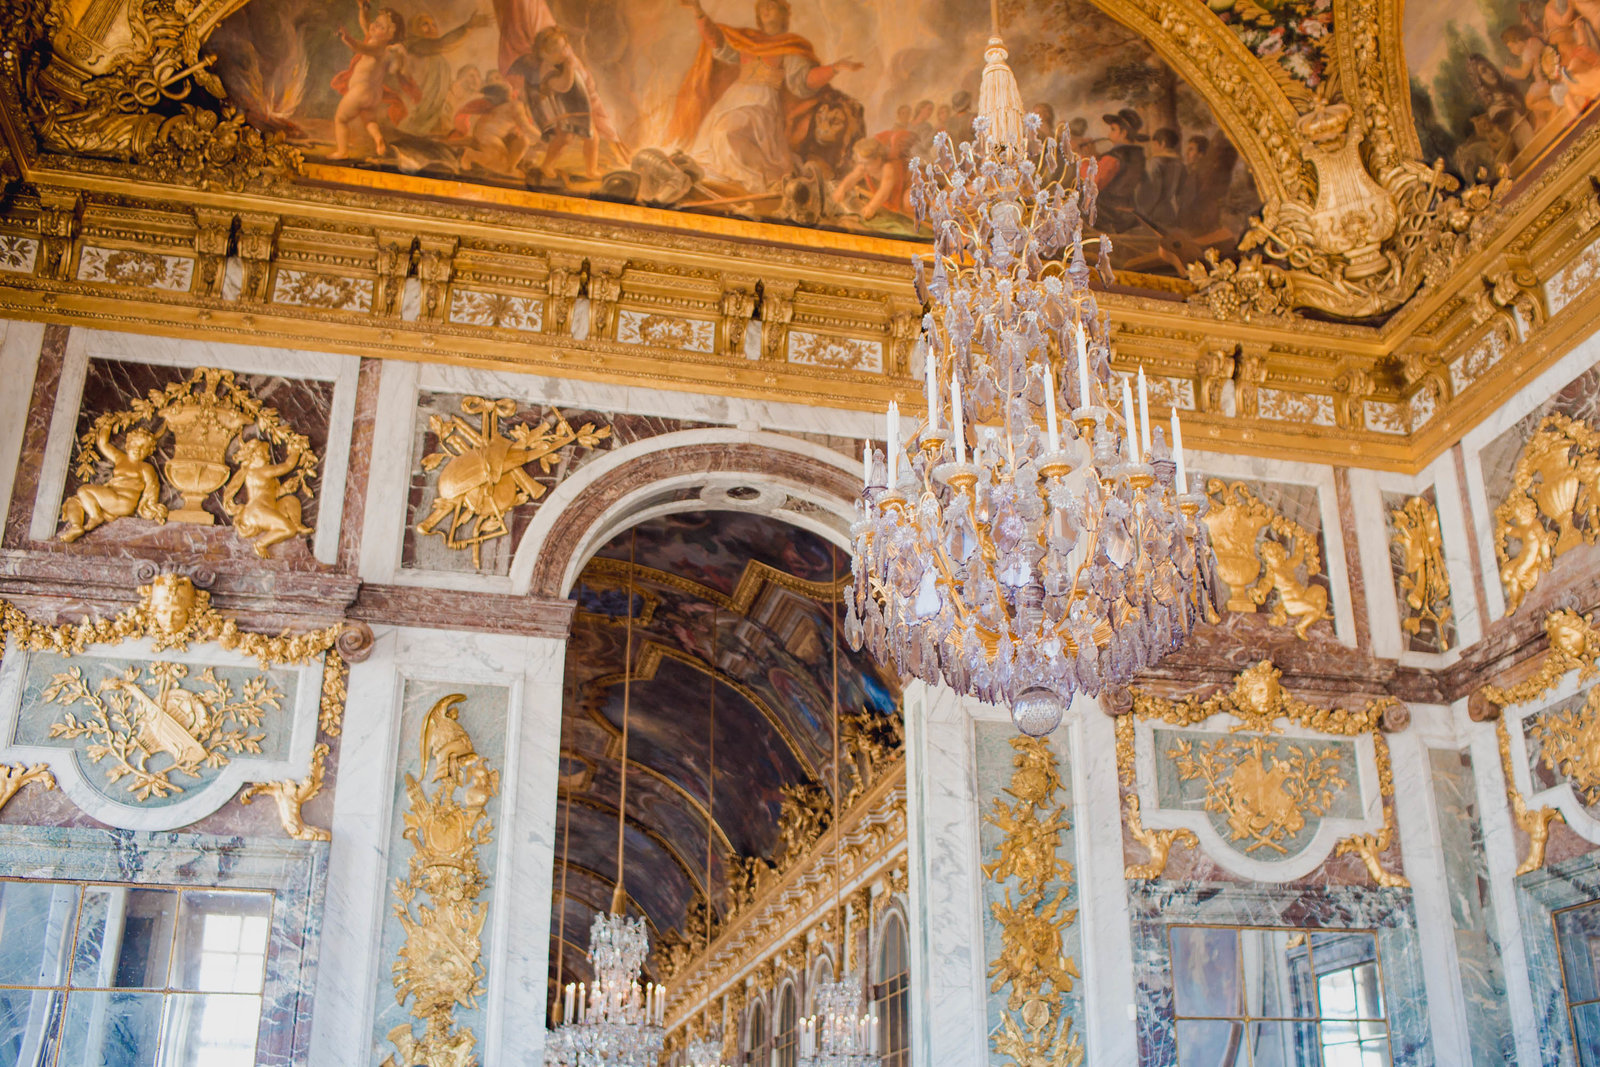 hall-mirrors-gold-palace-versailles-france-travel-destination-kate-timbers-photography-1661